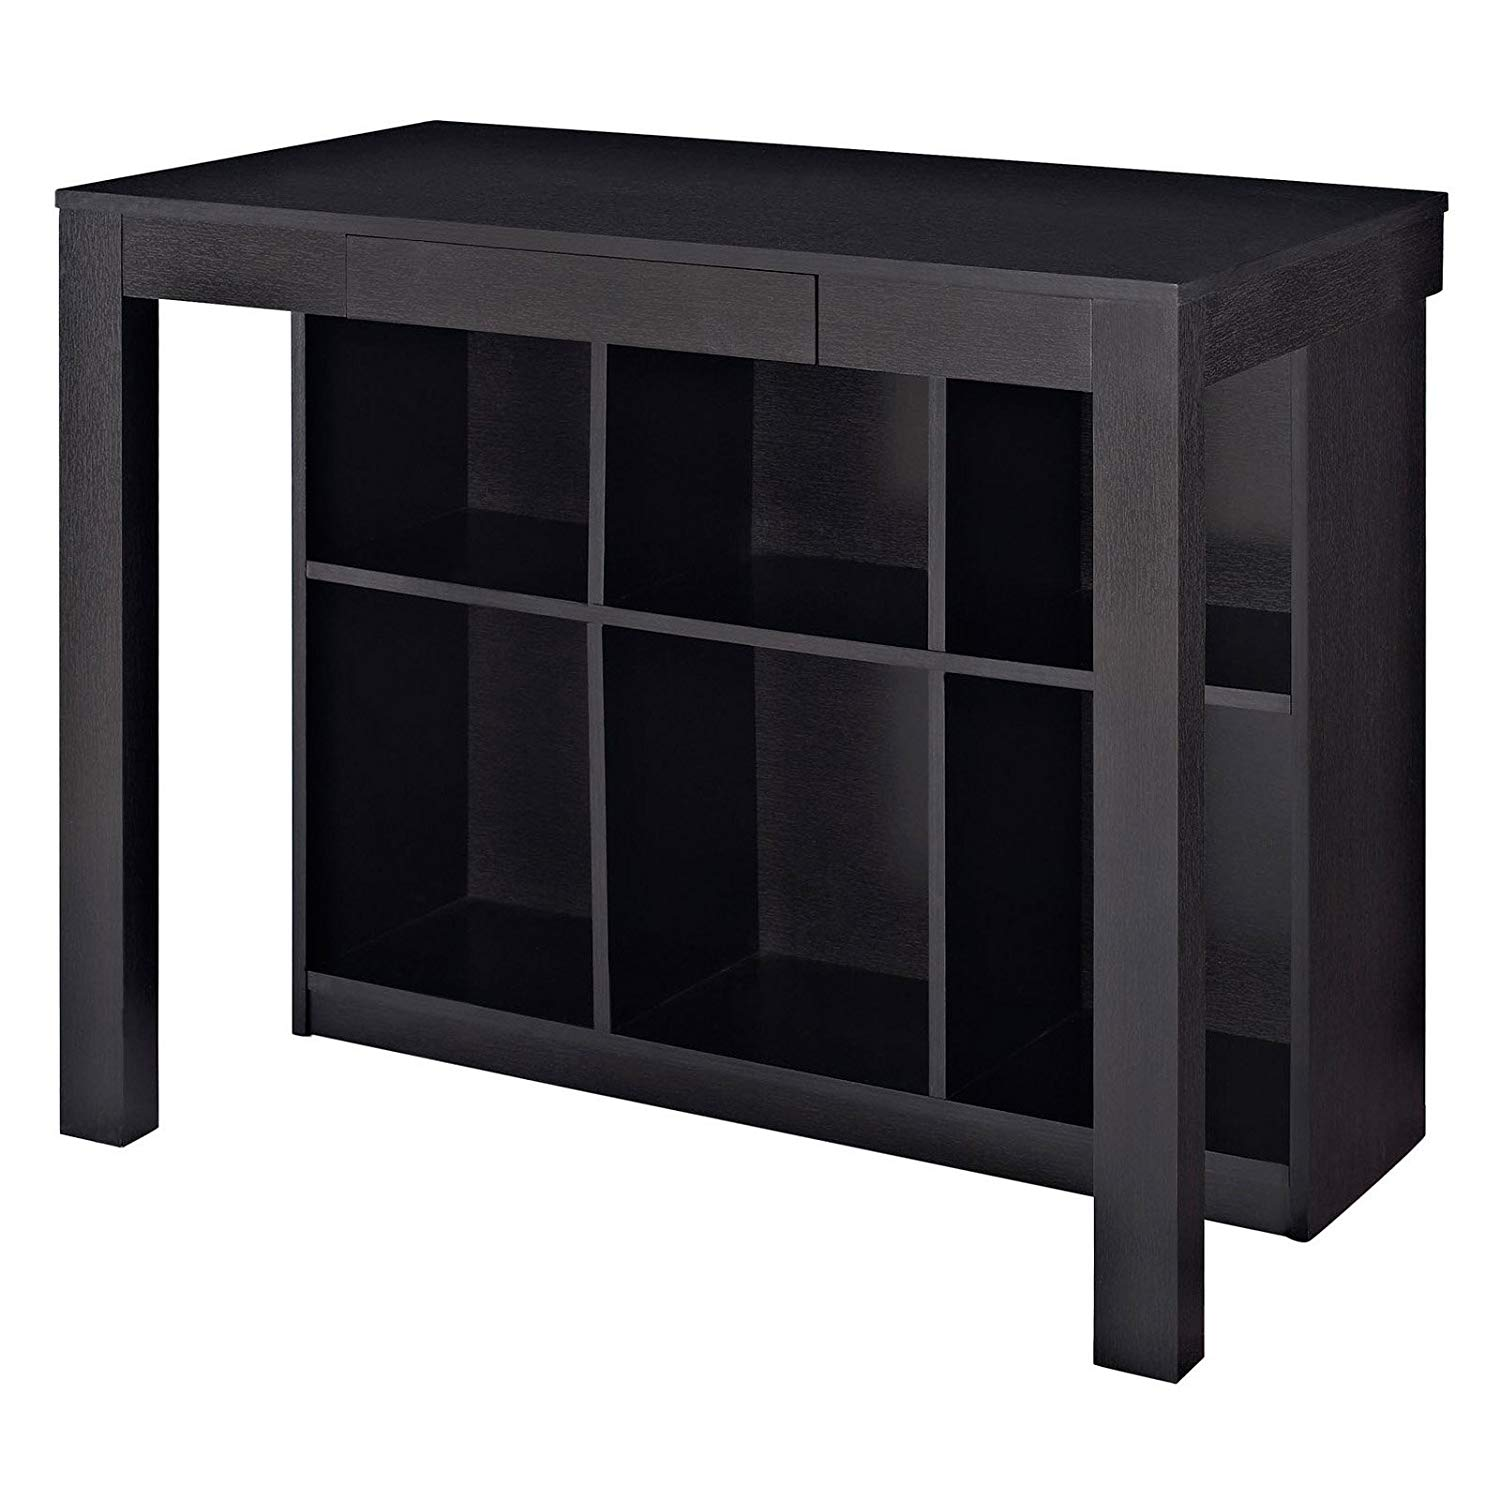 Home Desk Cubbies, Black, 6 Storage Cubbies Under Desk Store Books & Office Supplies, Pull-Out Storage Drawer, Assembly Required, Place it in The Living Room, Dining Room, Bedroom Home Office